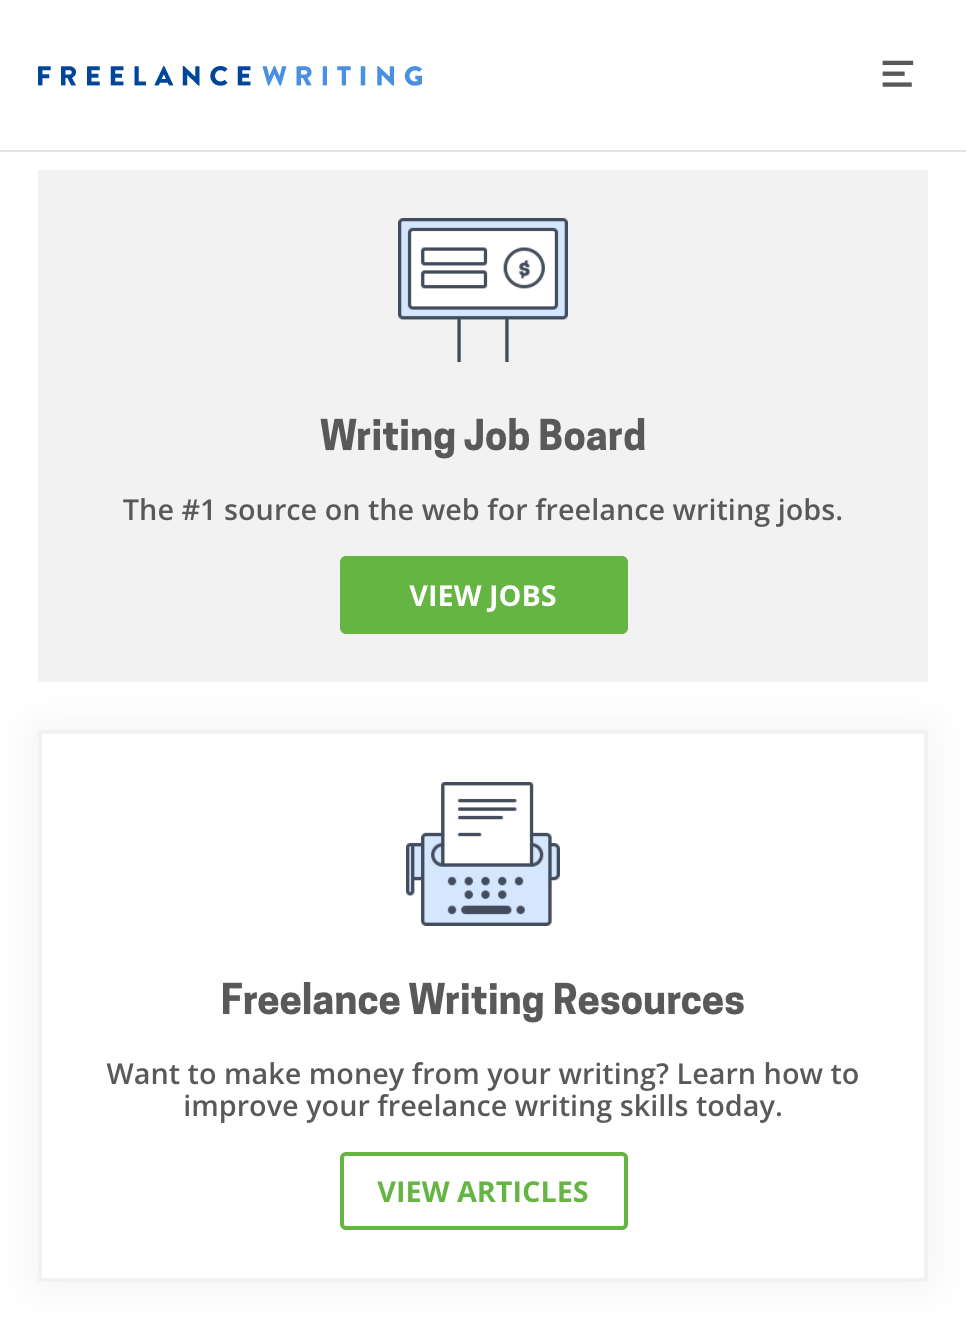 Freelance Writing: Jobs